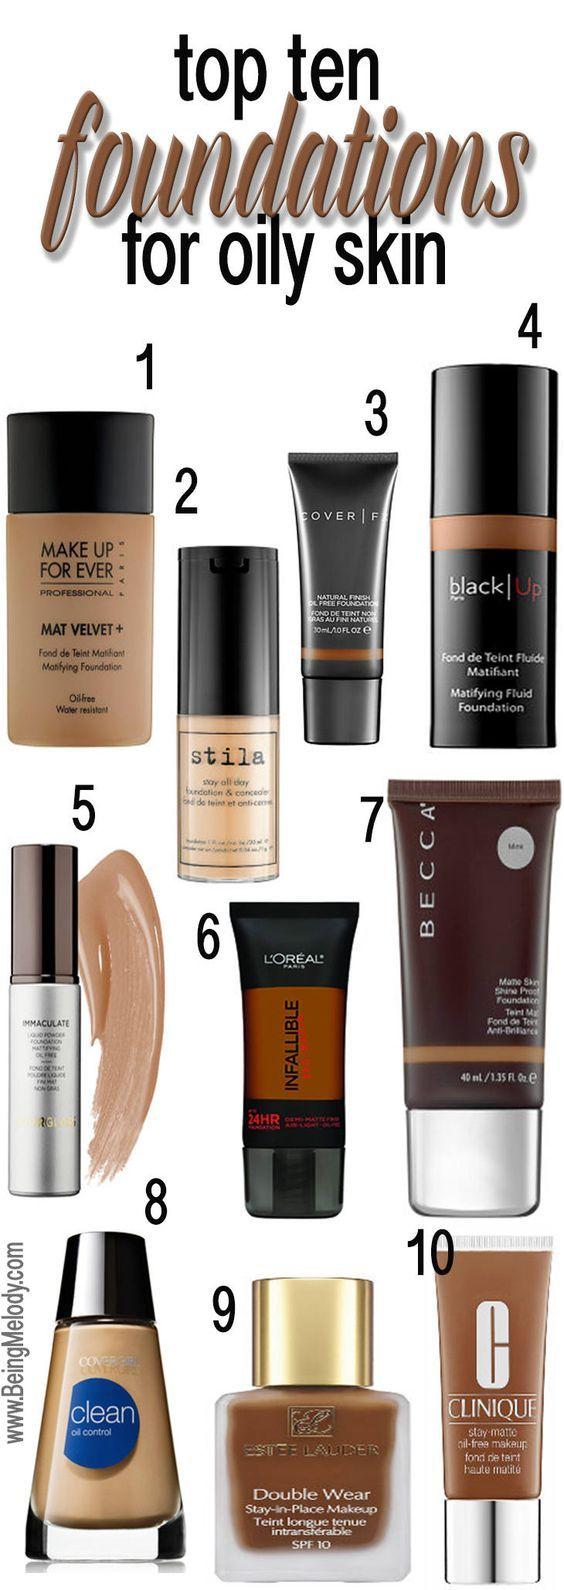 Top Ten Foundations for Oily Skin | www.beingmelody.com| @beingmelody: